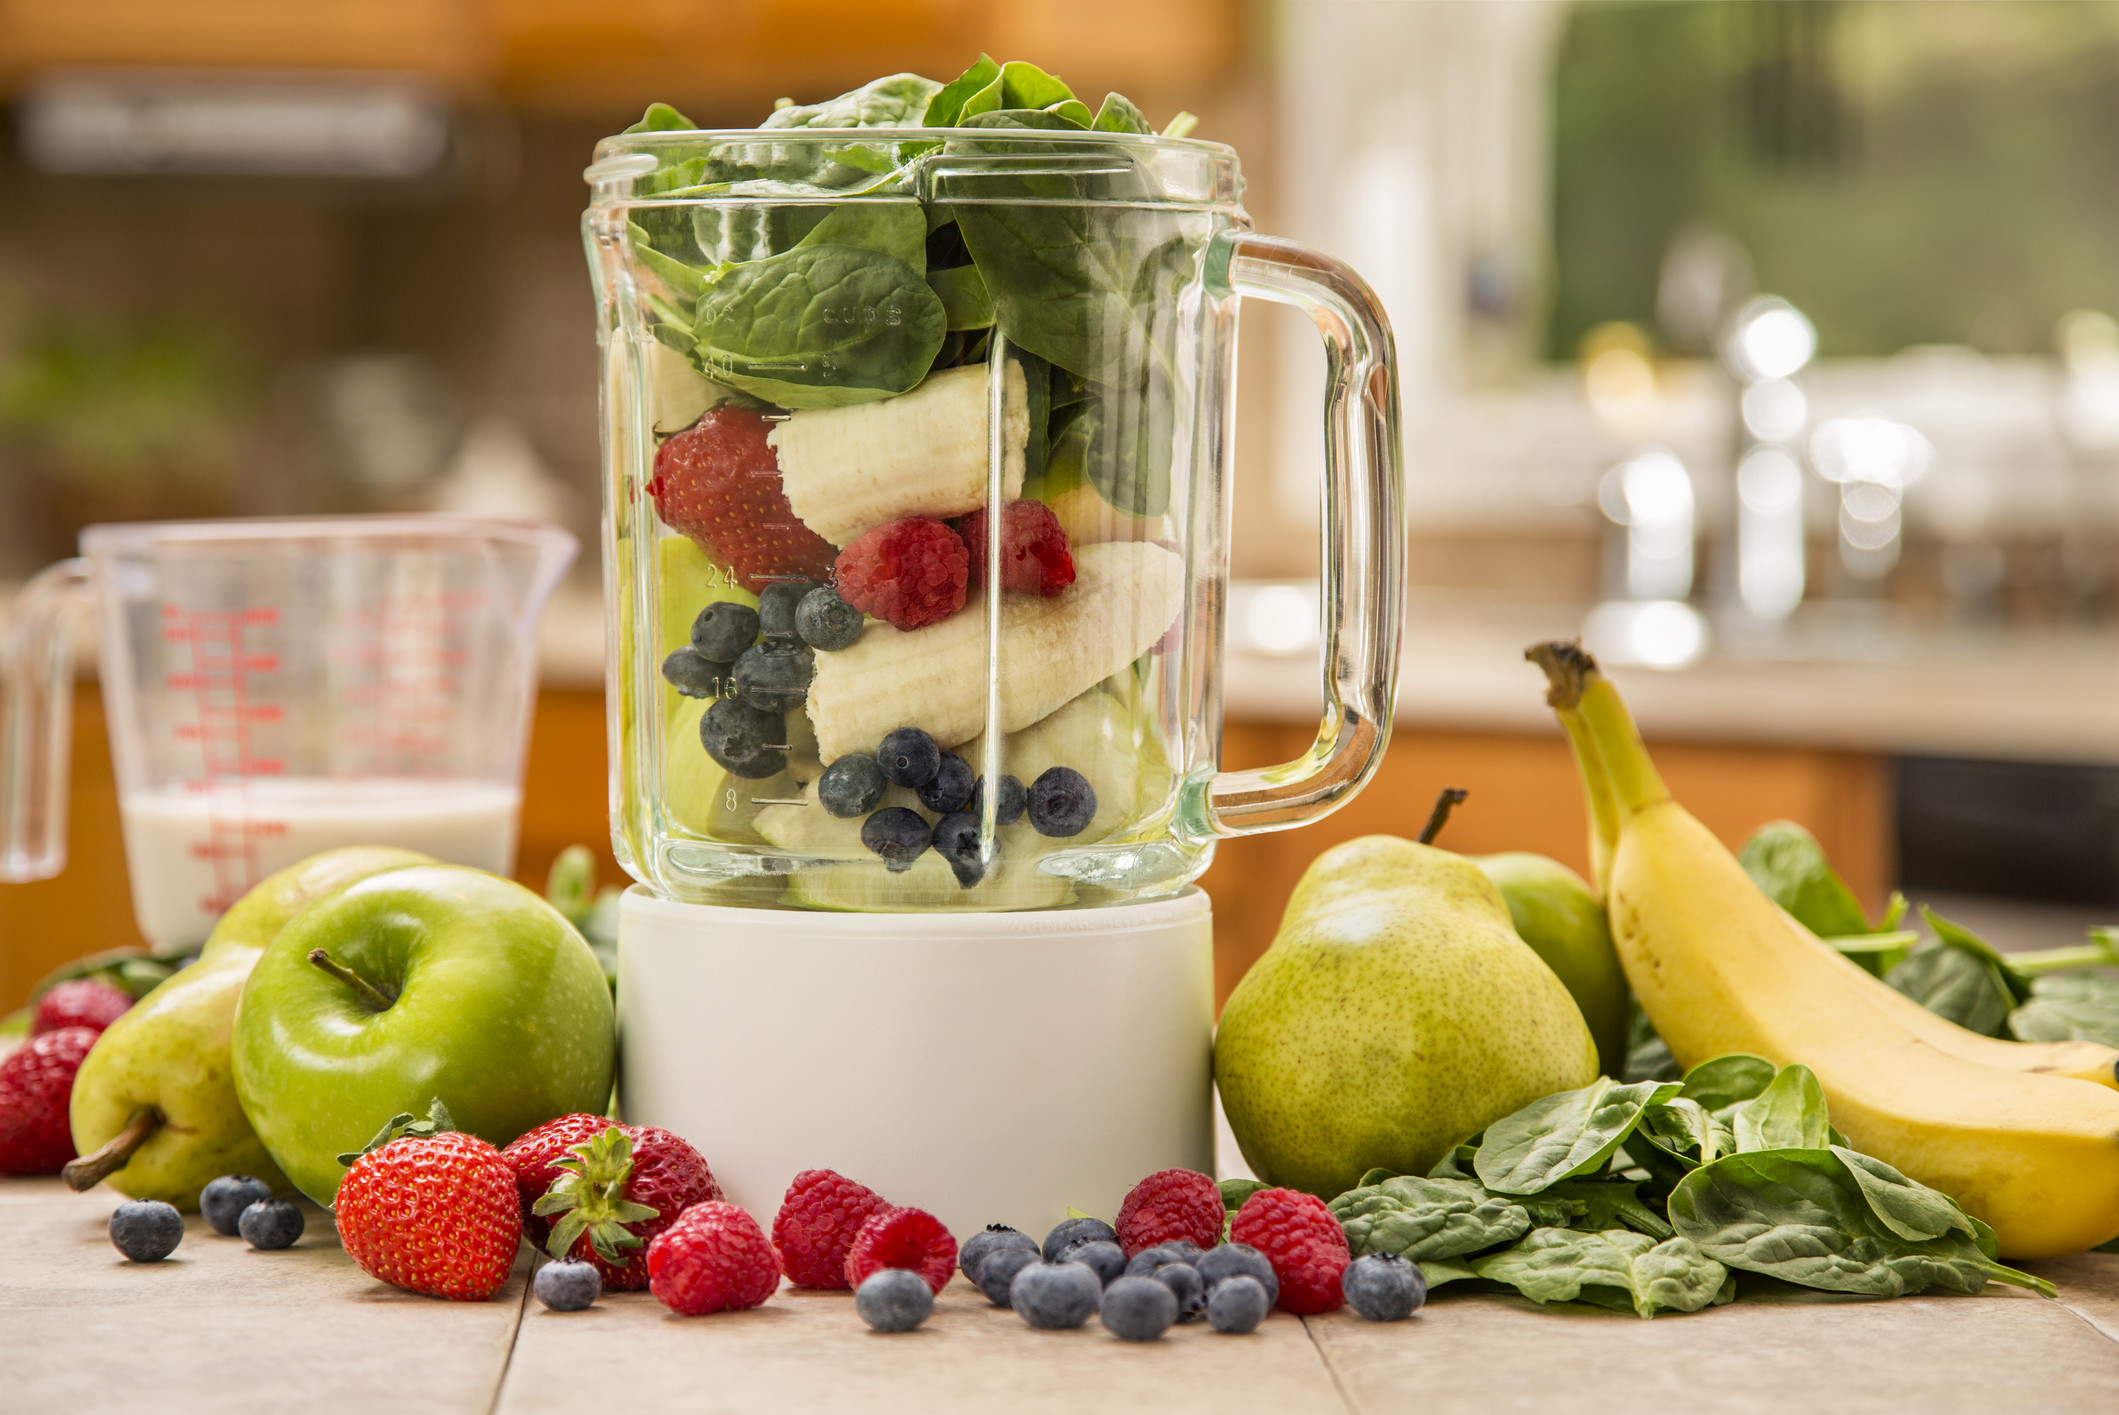 Ingredients For Healthy Smoothies  6 Awesome Ingre nts to Add to Your Smoothie – Health